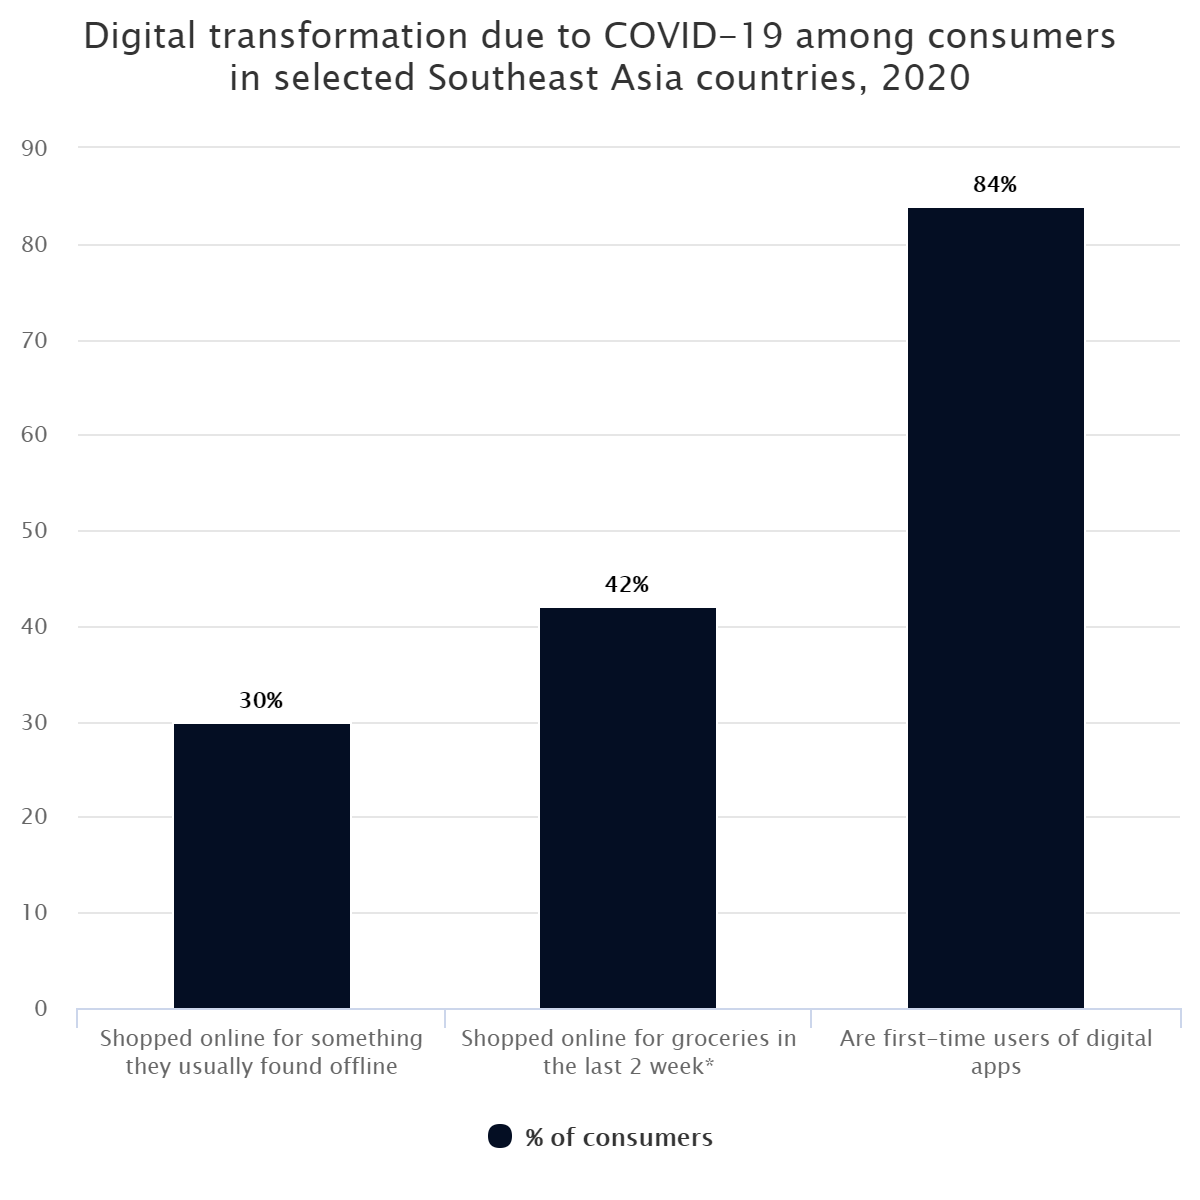 Digital transformation due to COVID-19 among consumers in selected Southeast Asia countries, 2020